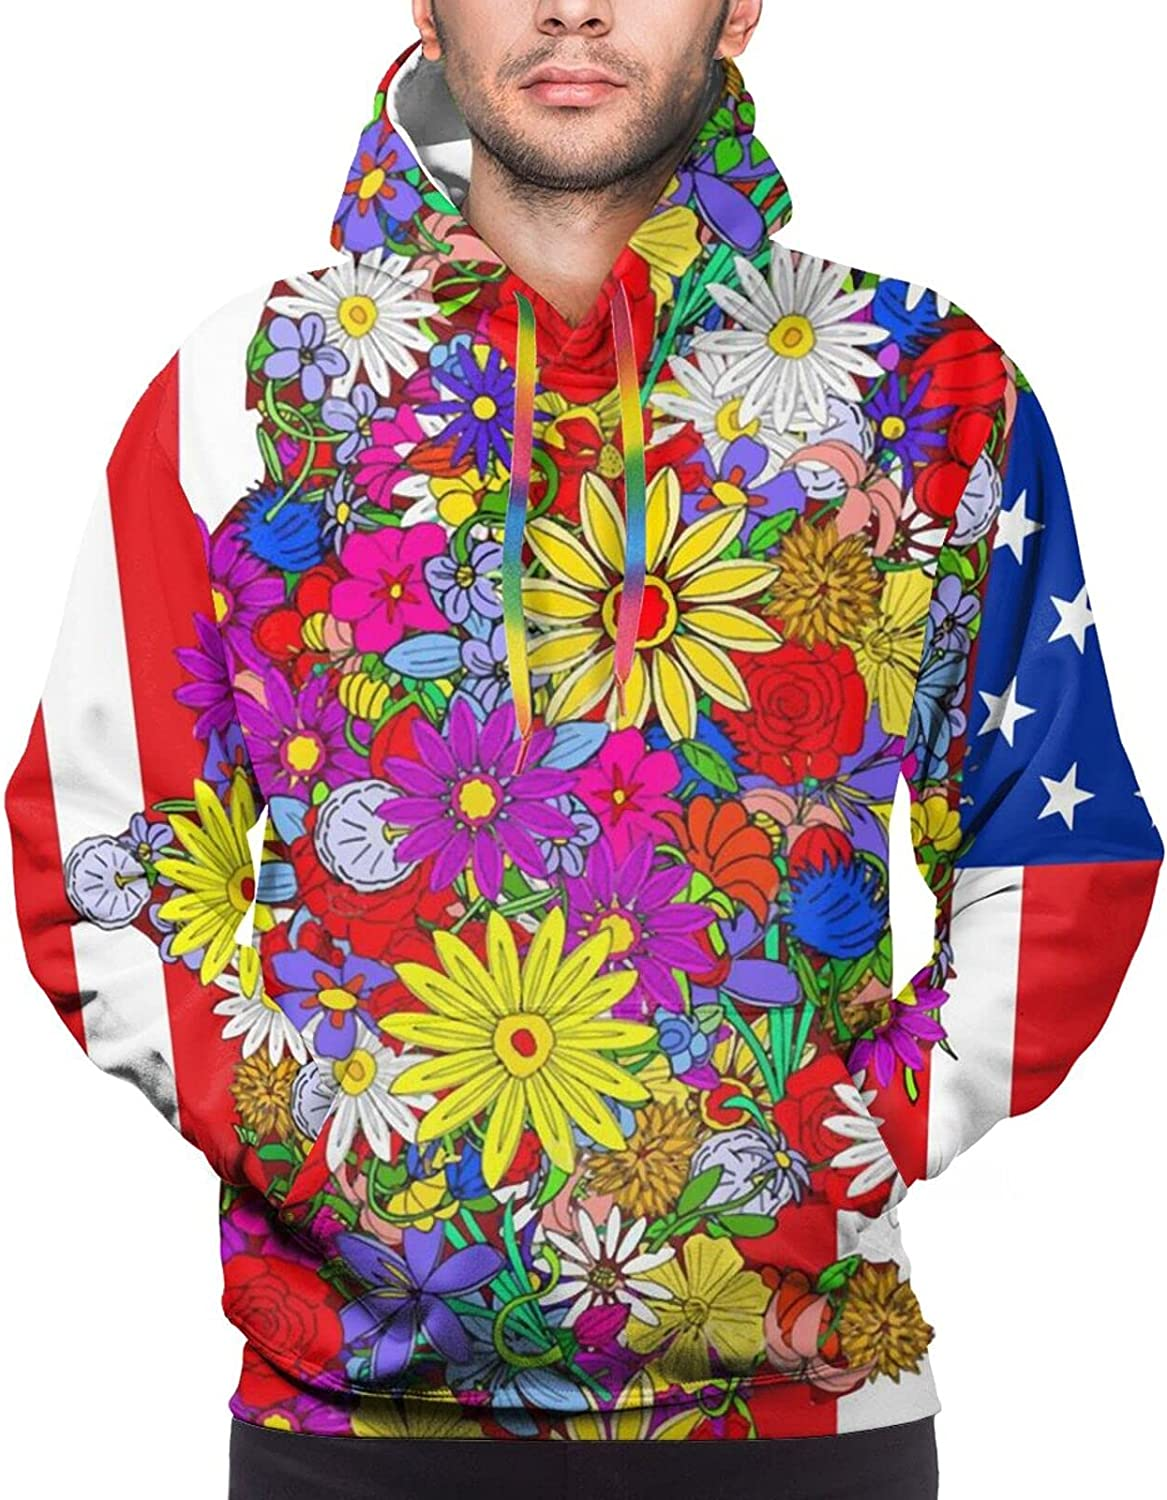 Hoodie For Men Women Unisex Floral Usa Map American Flag Hoodies Outdoor Sports Sweater